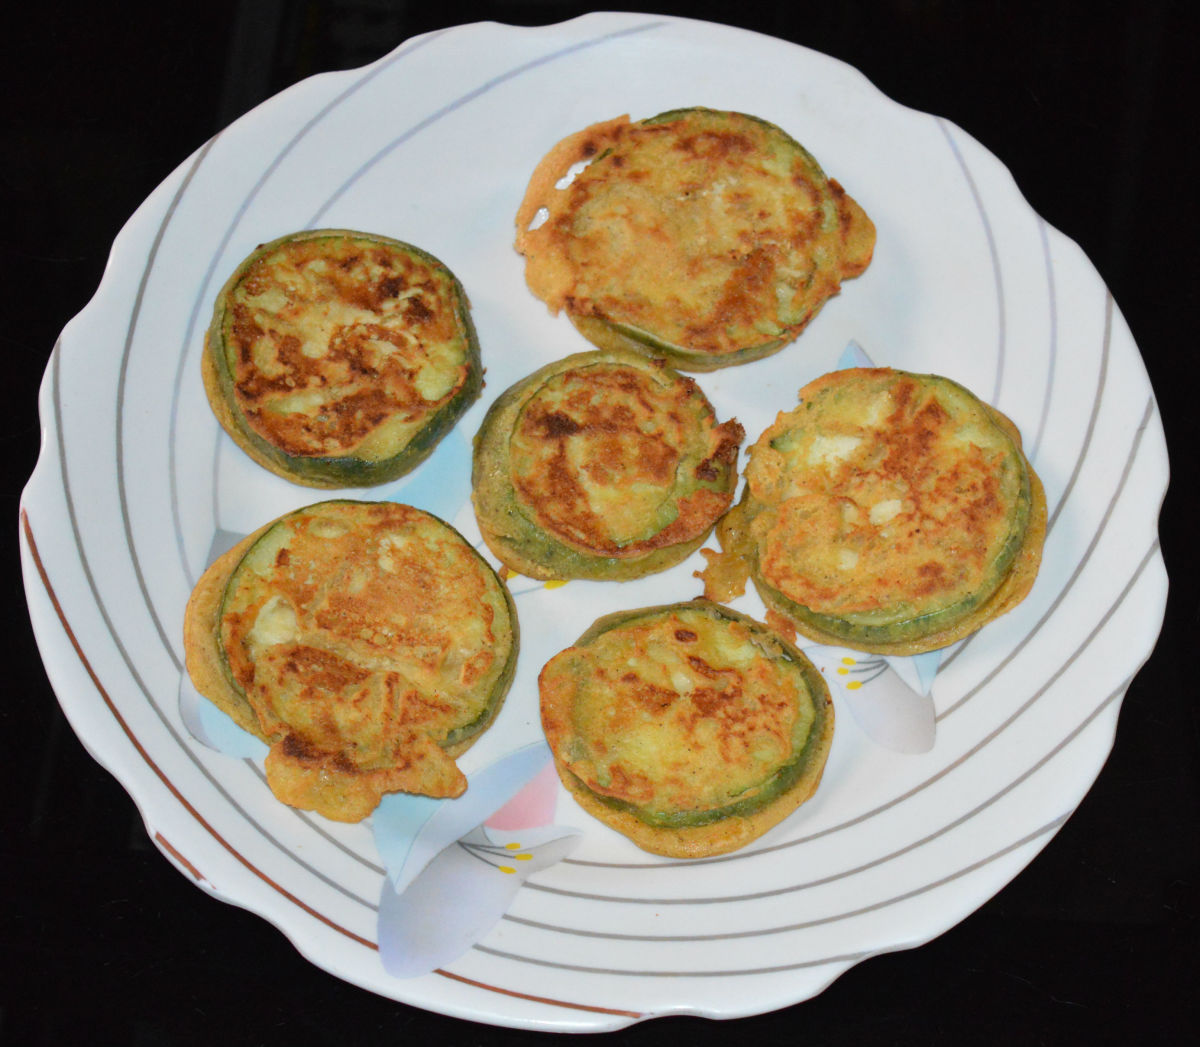 How to Make Savory Eggplant Fritters